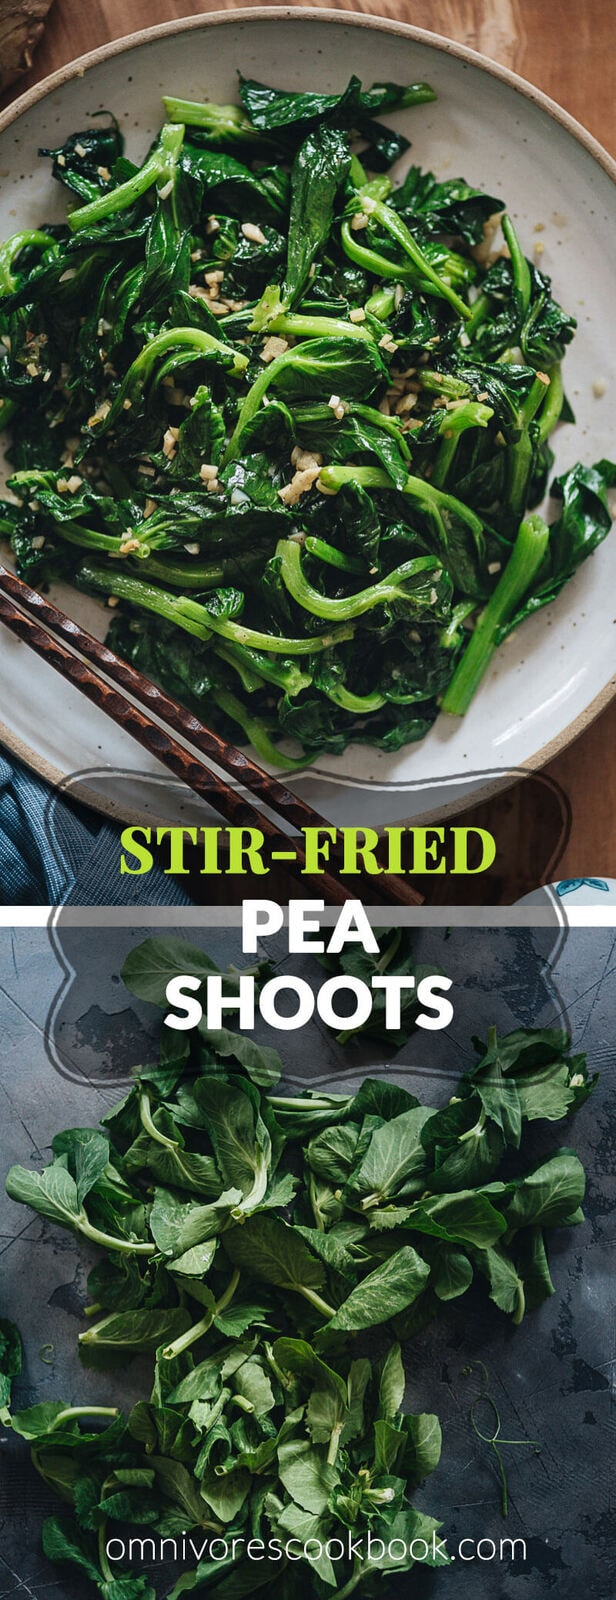 Stir-Fried Pea Shoots with Garlic - Tender crisp stir-fried pea shoots with plenty of aromatics to create a mouth-watering dish that you can't stop eating. The post includes all the notes and tips to walk you through the process step-by-step to create a restaurant-style result. {Vegan, Gluten-Free adaptable}